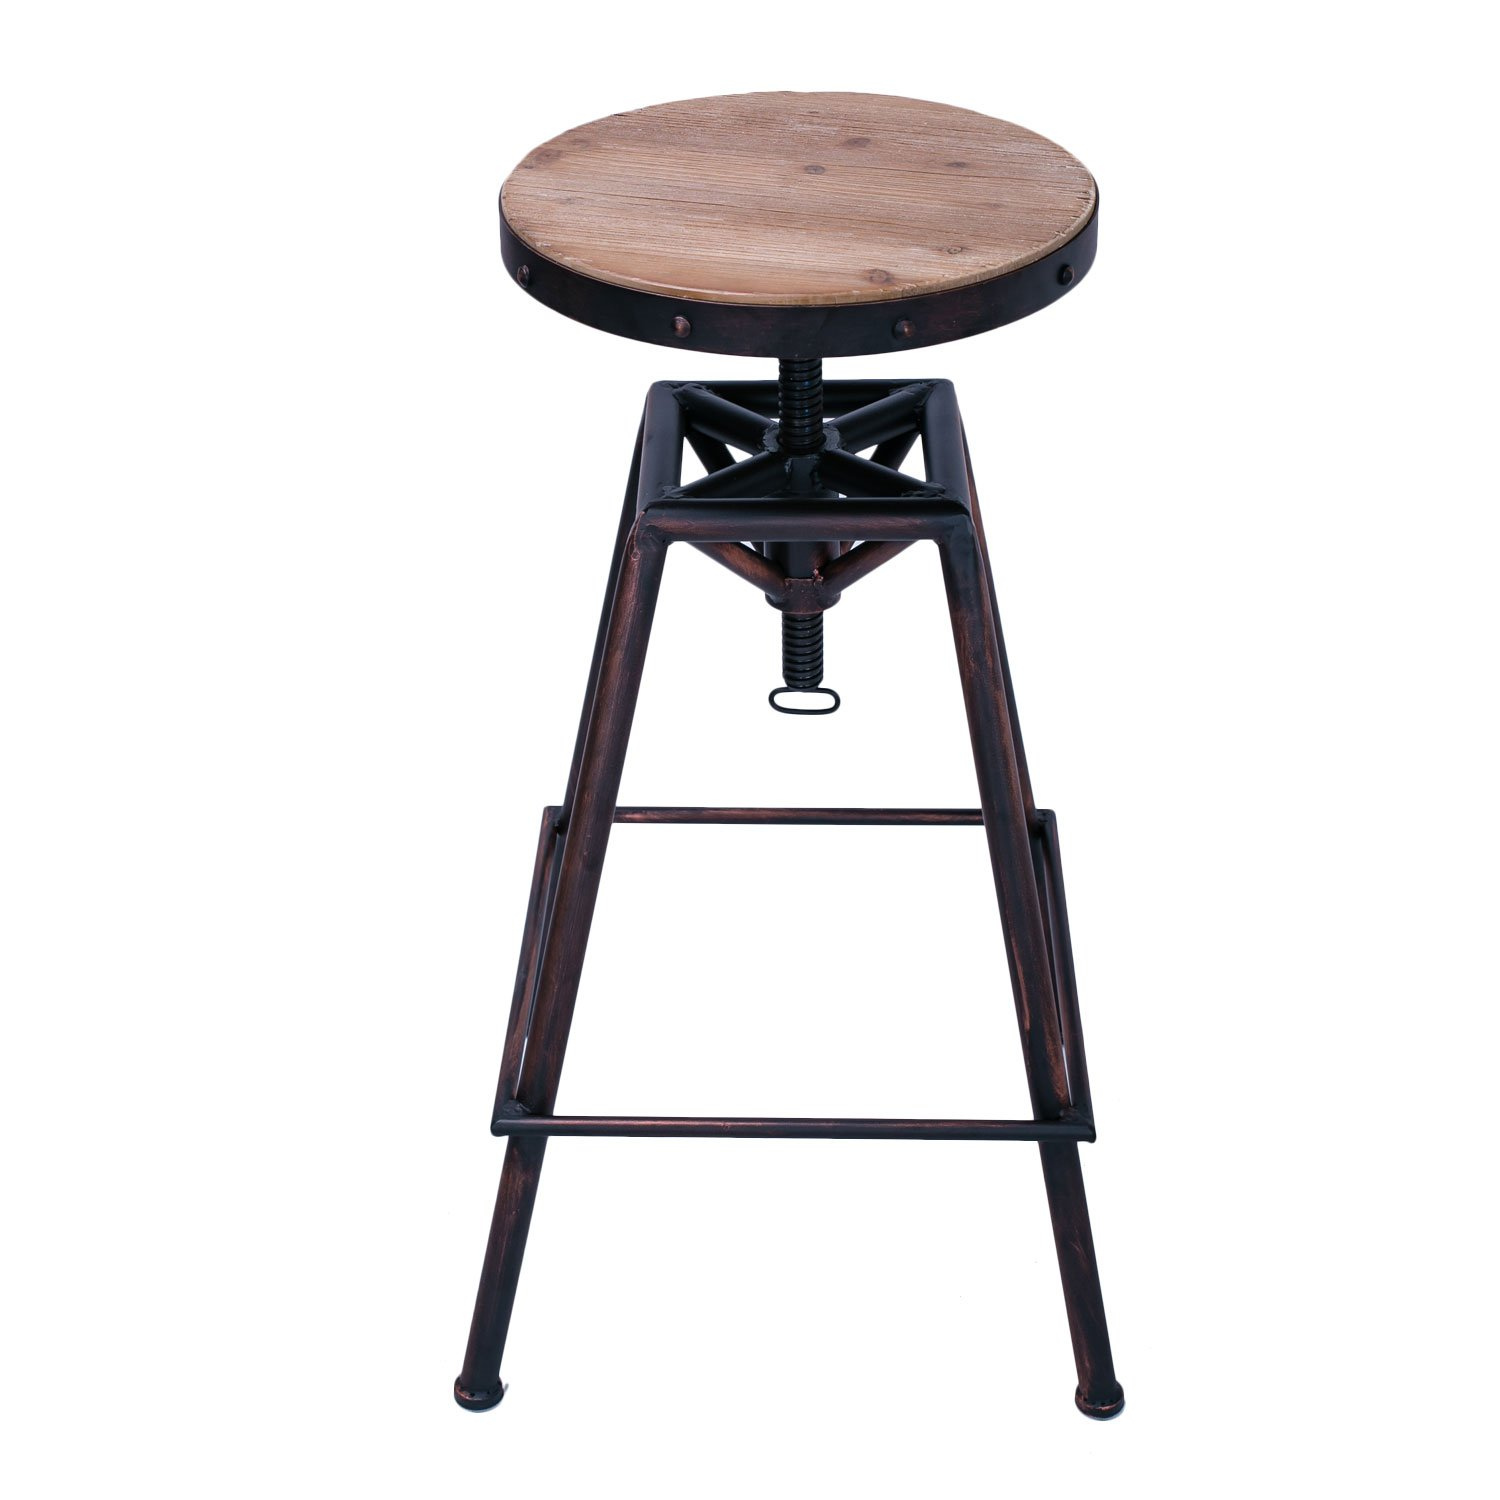 Adeco Metal Bar Stool Barstool Adjustable Height With